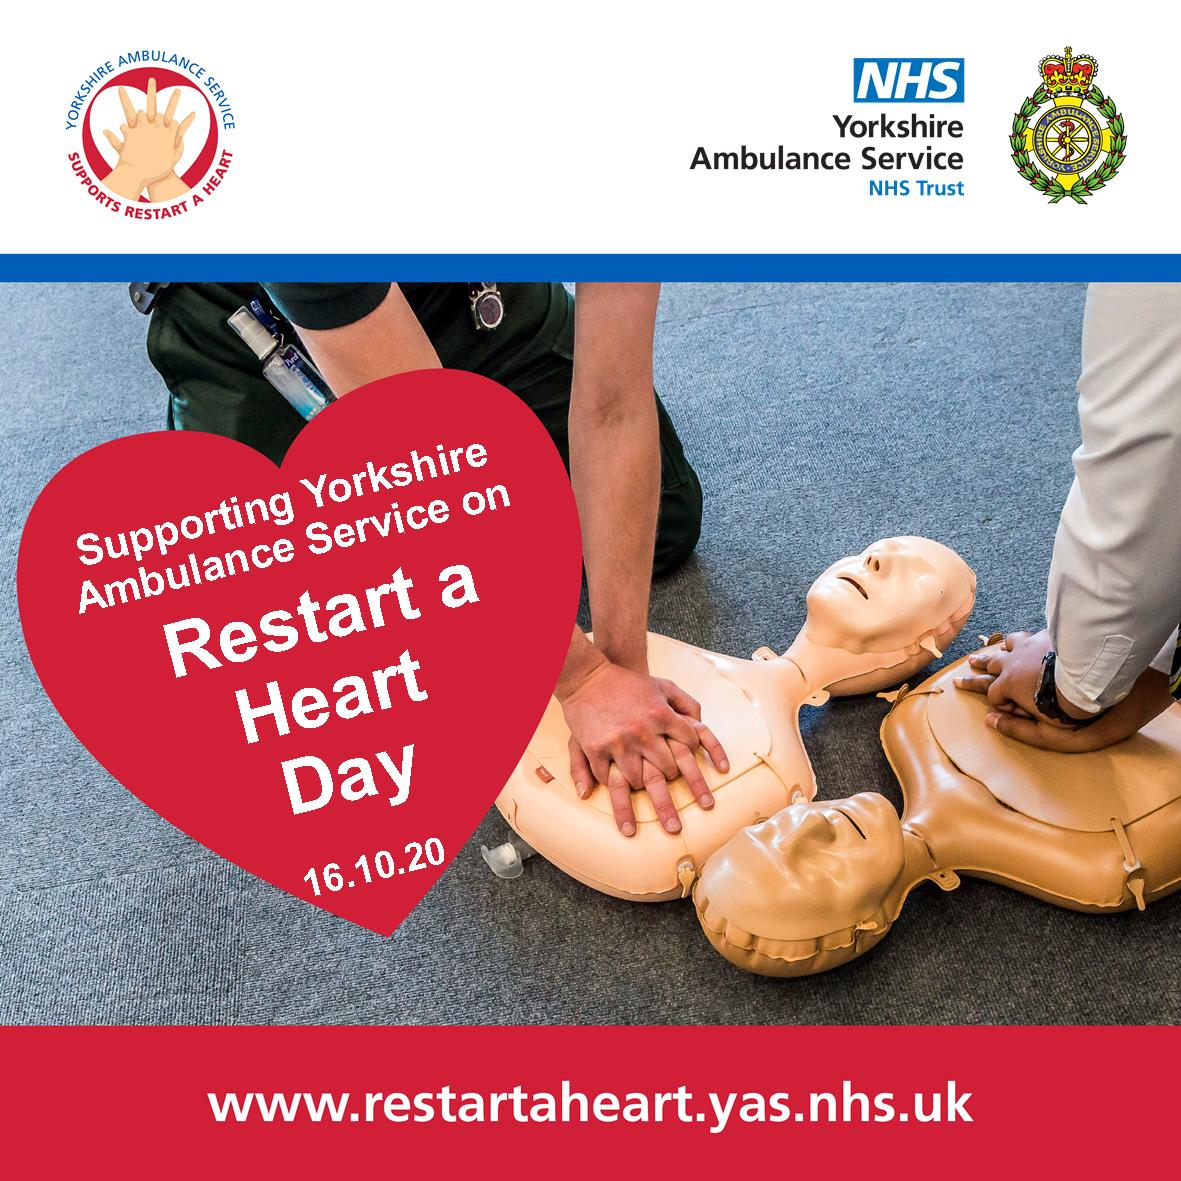 Download: Supporting Yorkshire Ambulance Service on Restart a Heart Day